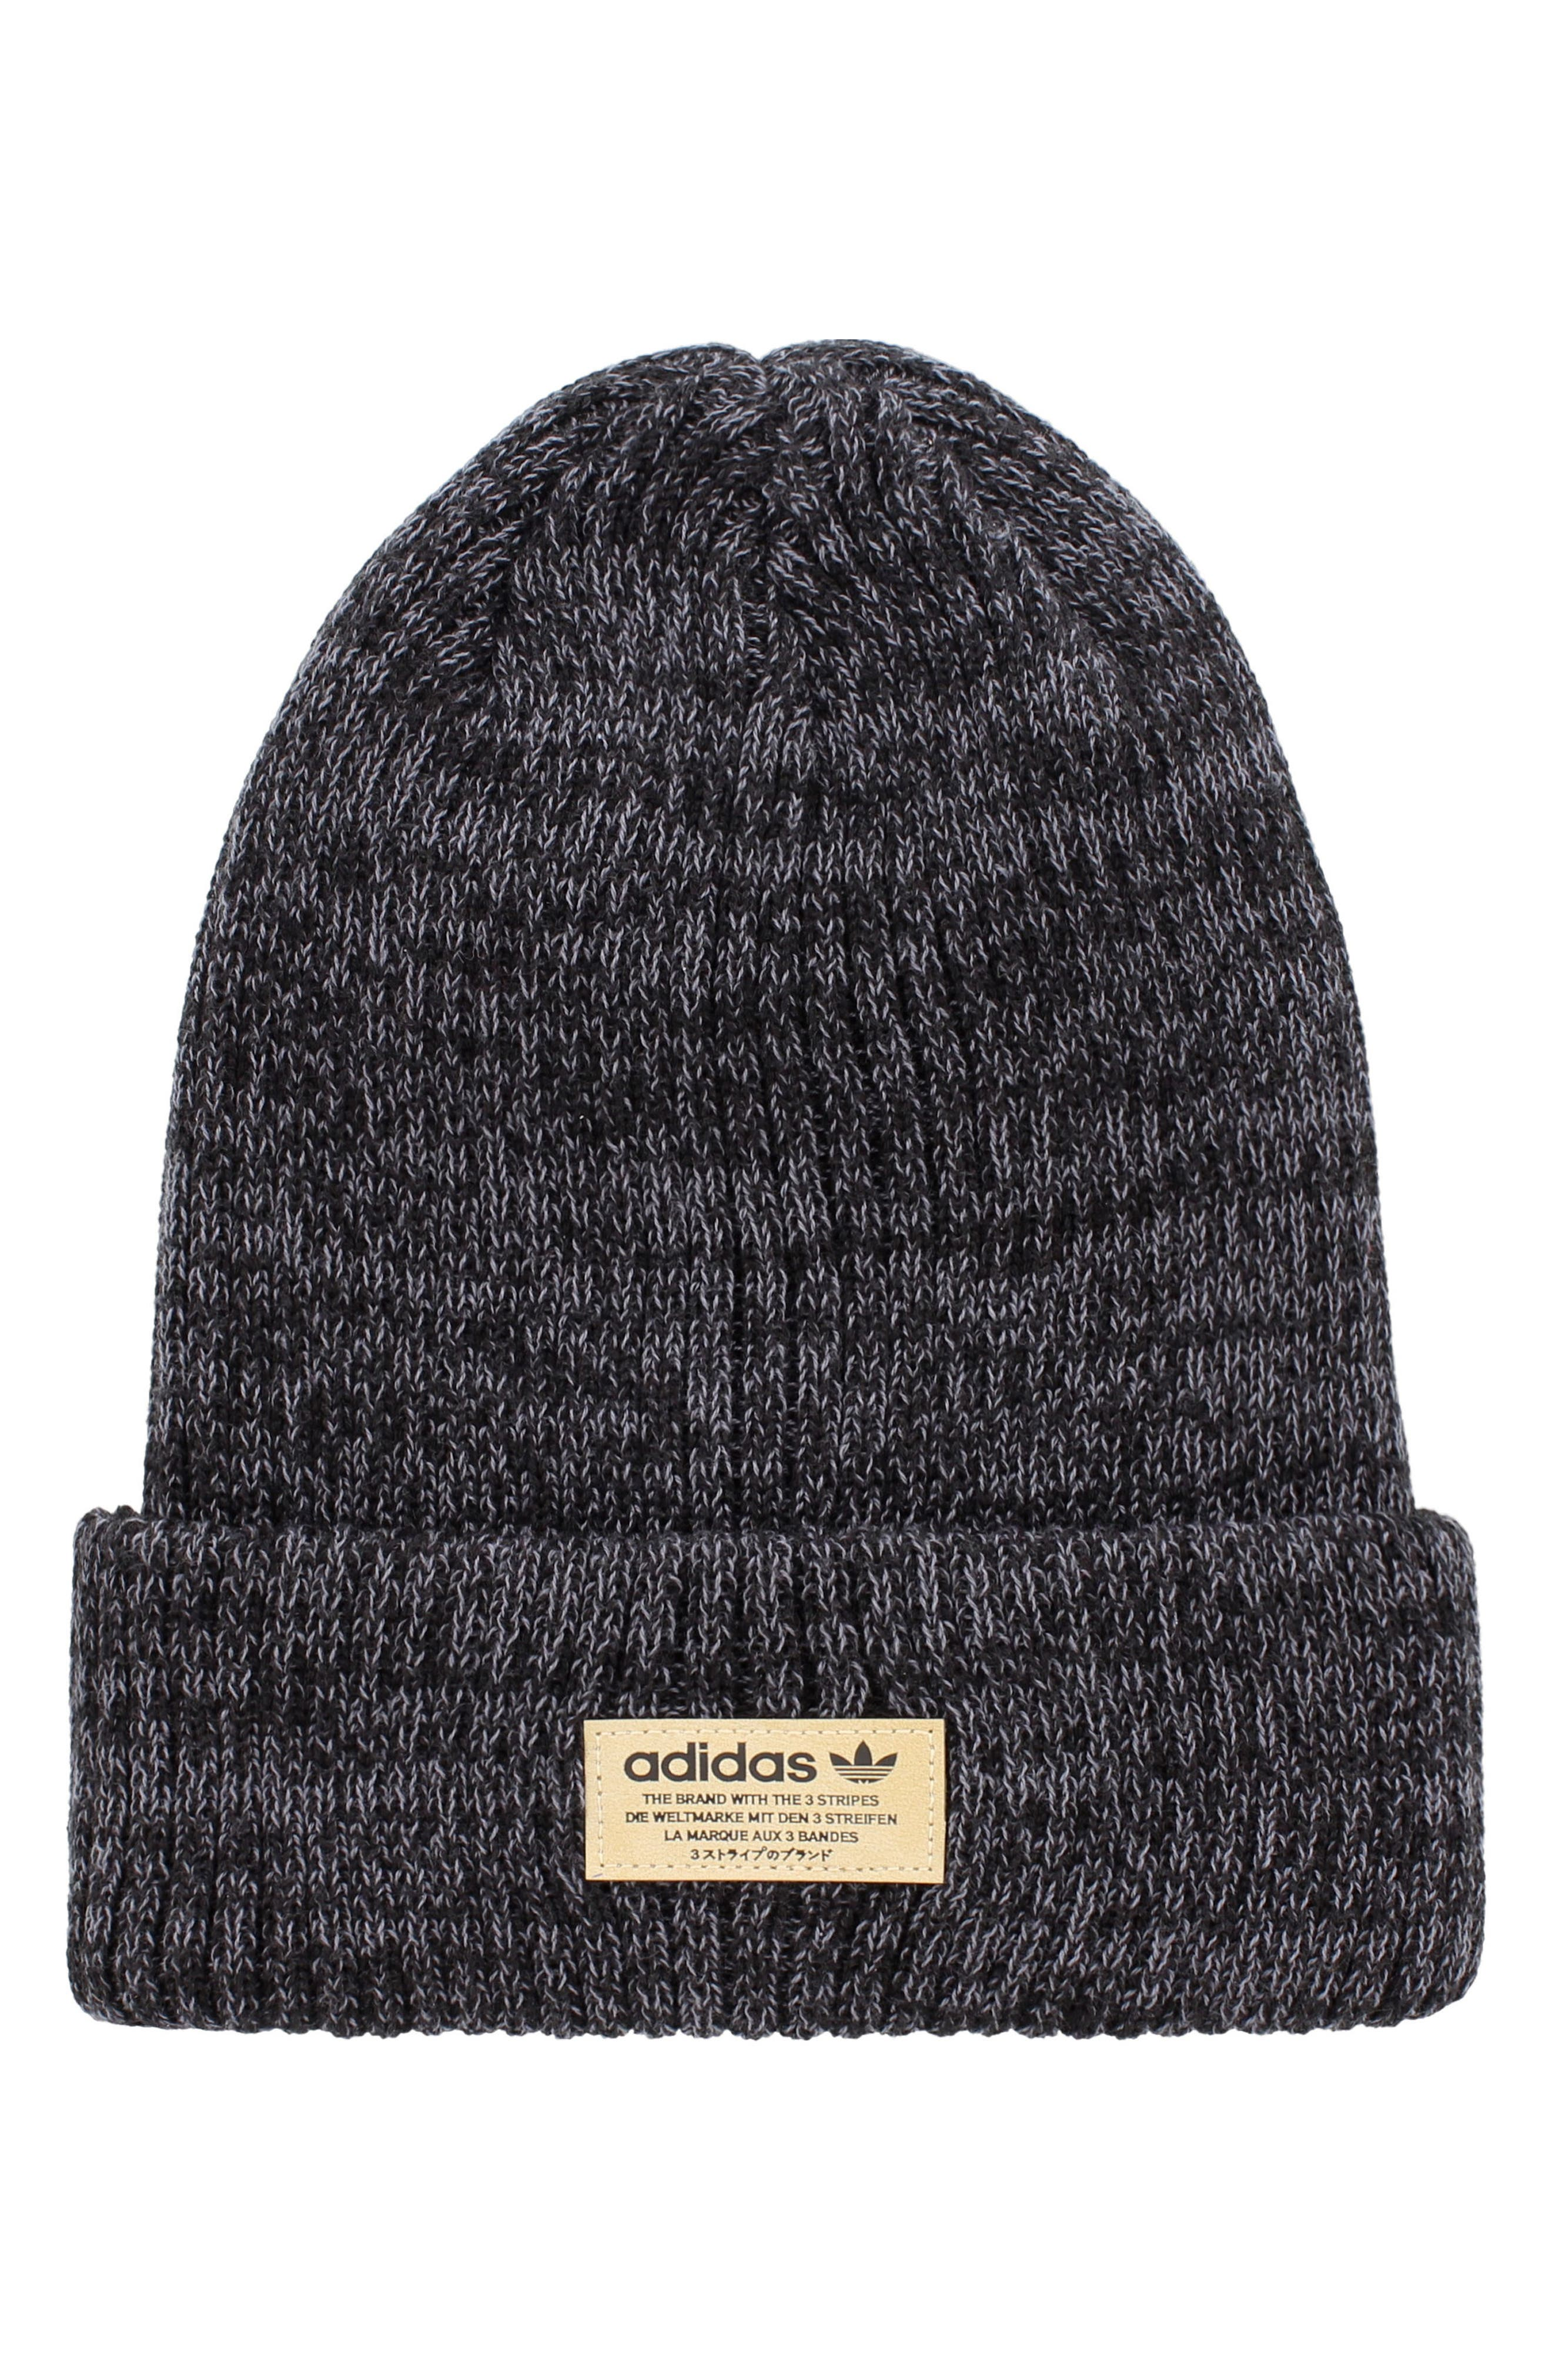 NMD Knit Cap,                         Main,                         color, Black/ Onyx